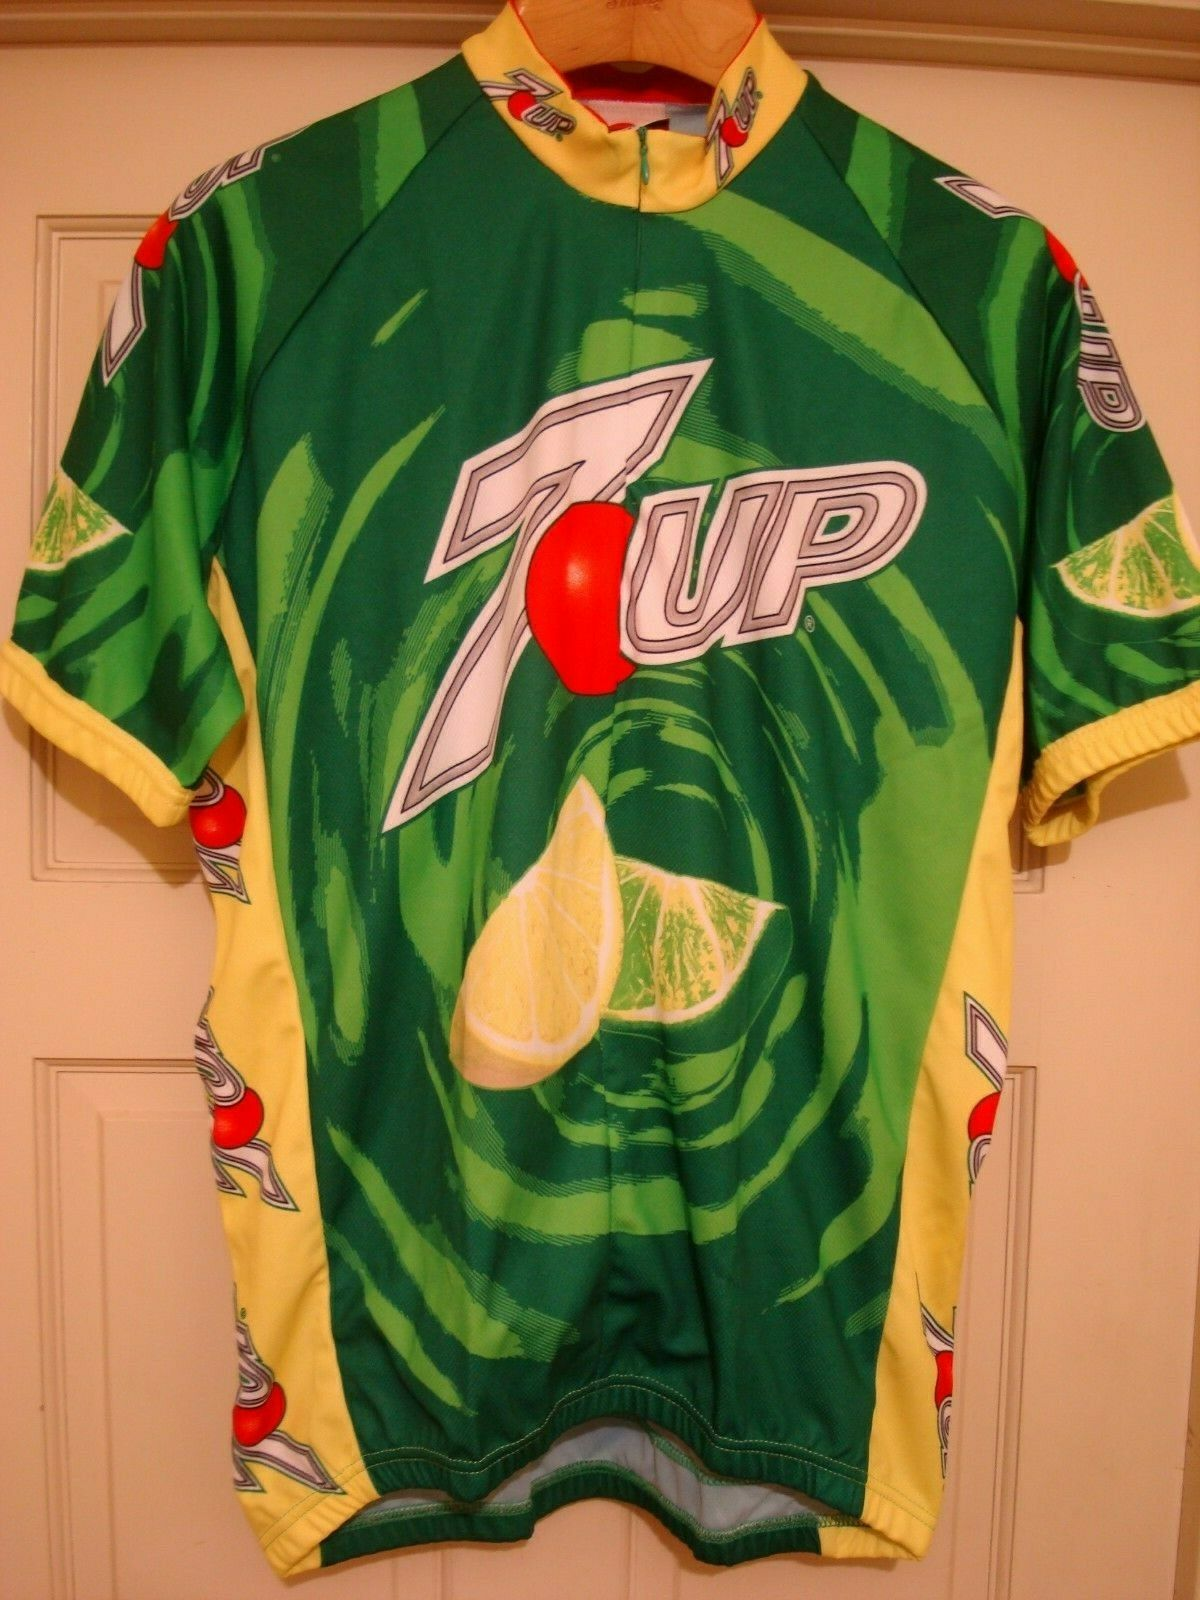 7 UP Bicycle Jersey XXl mens